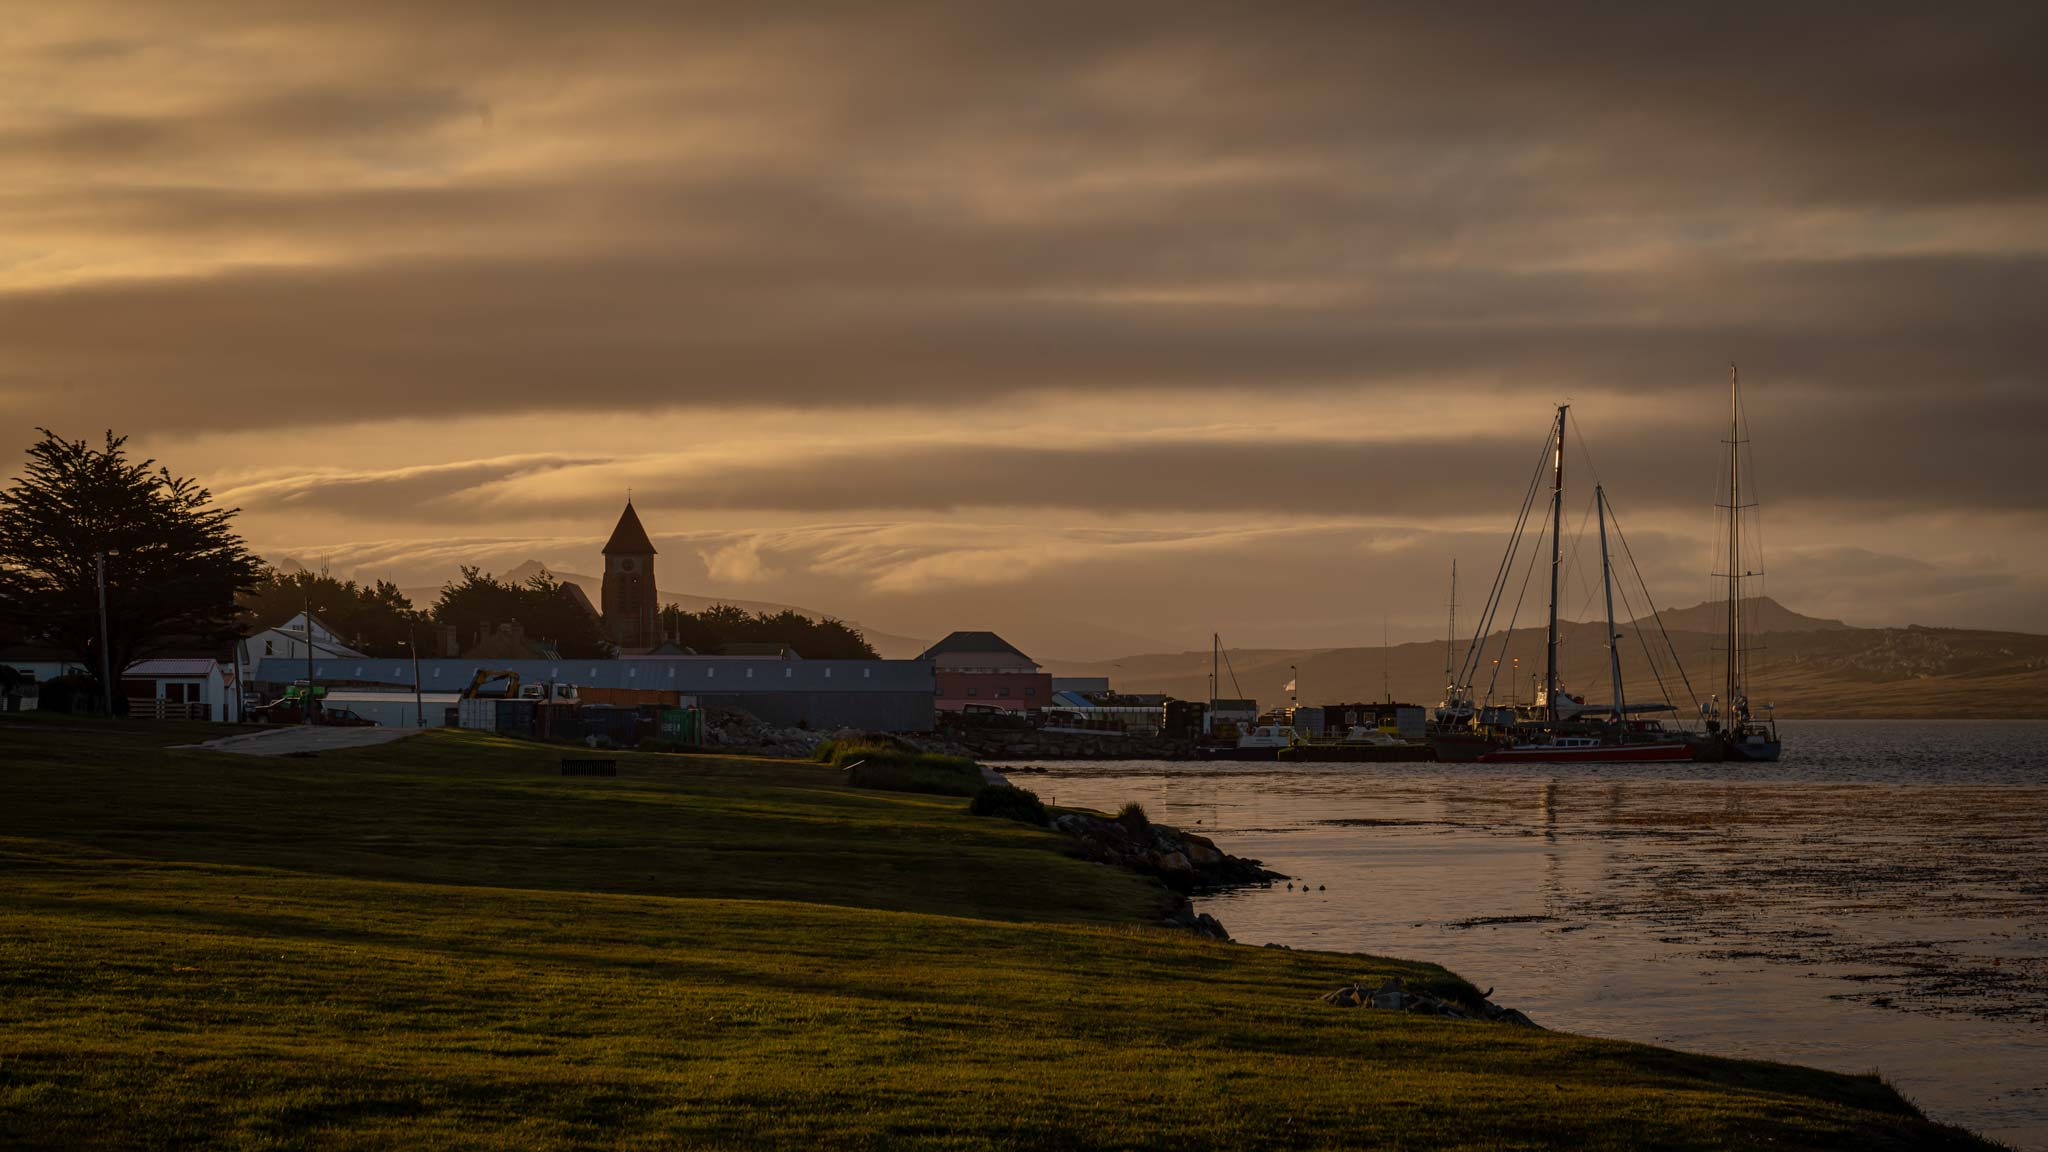 Sunset in Stanley, the capital of the Falkland Islands